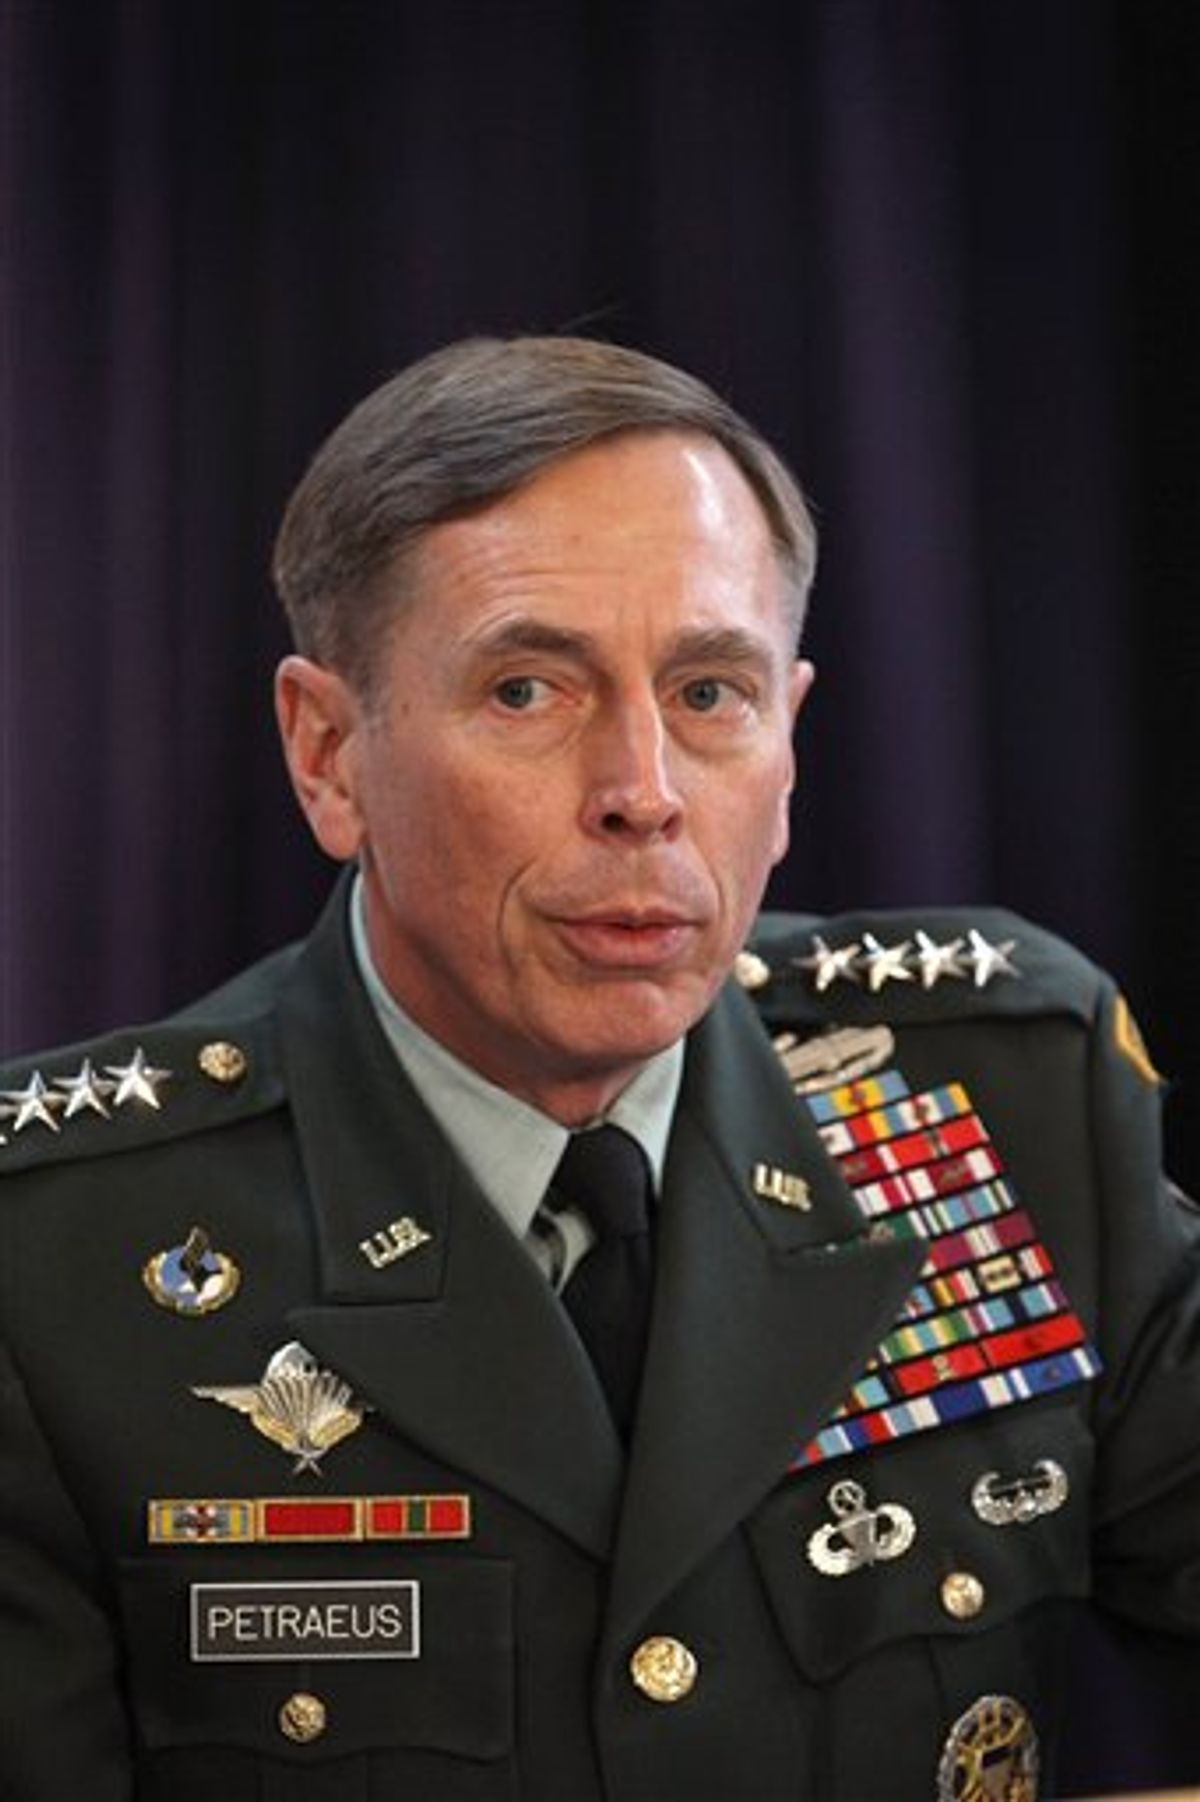 Gen. David Petraeus, the top U.S and NATO commander addresses RUSI members on 'The International Mission in Afghanistan', at the United Services Institute in central London, Friday Oct. 15, 2010.  Petraeus has confirmed that NATO has provided safe passage for top Taliban leaders to travel to Kabul for face-to-face negotiations with the American-backed Afghan government.    (AP Photo/Dan Kitwood, Pool) (AP)